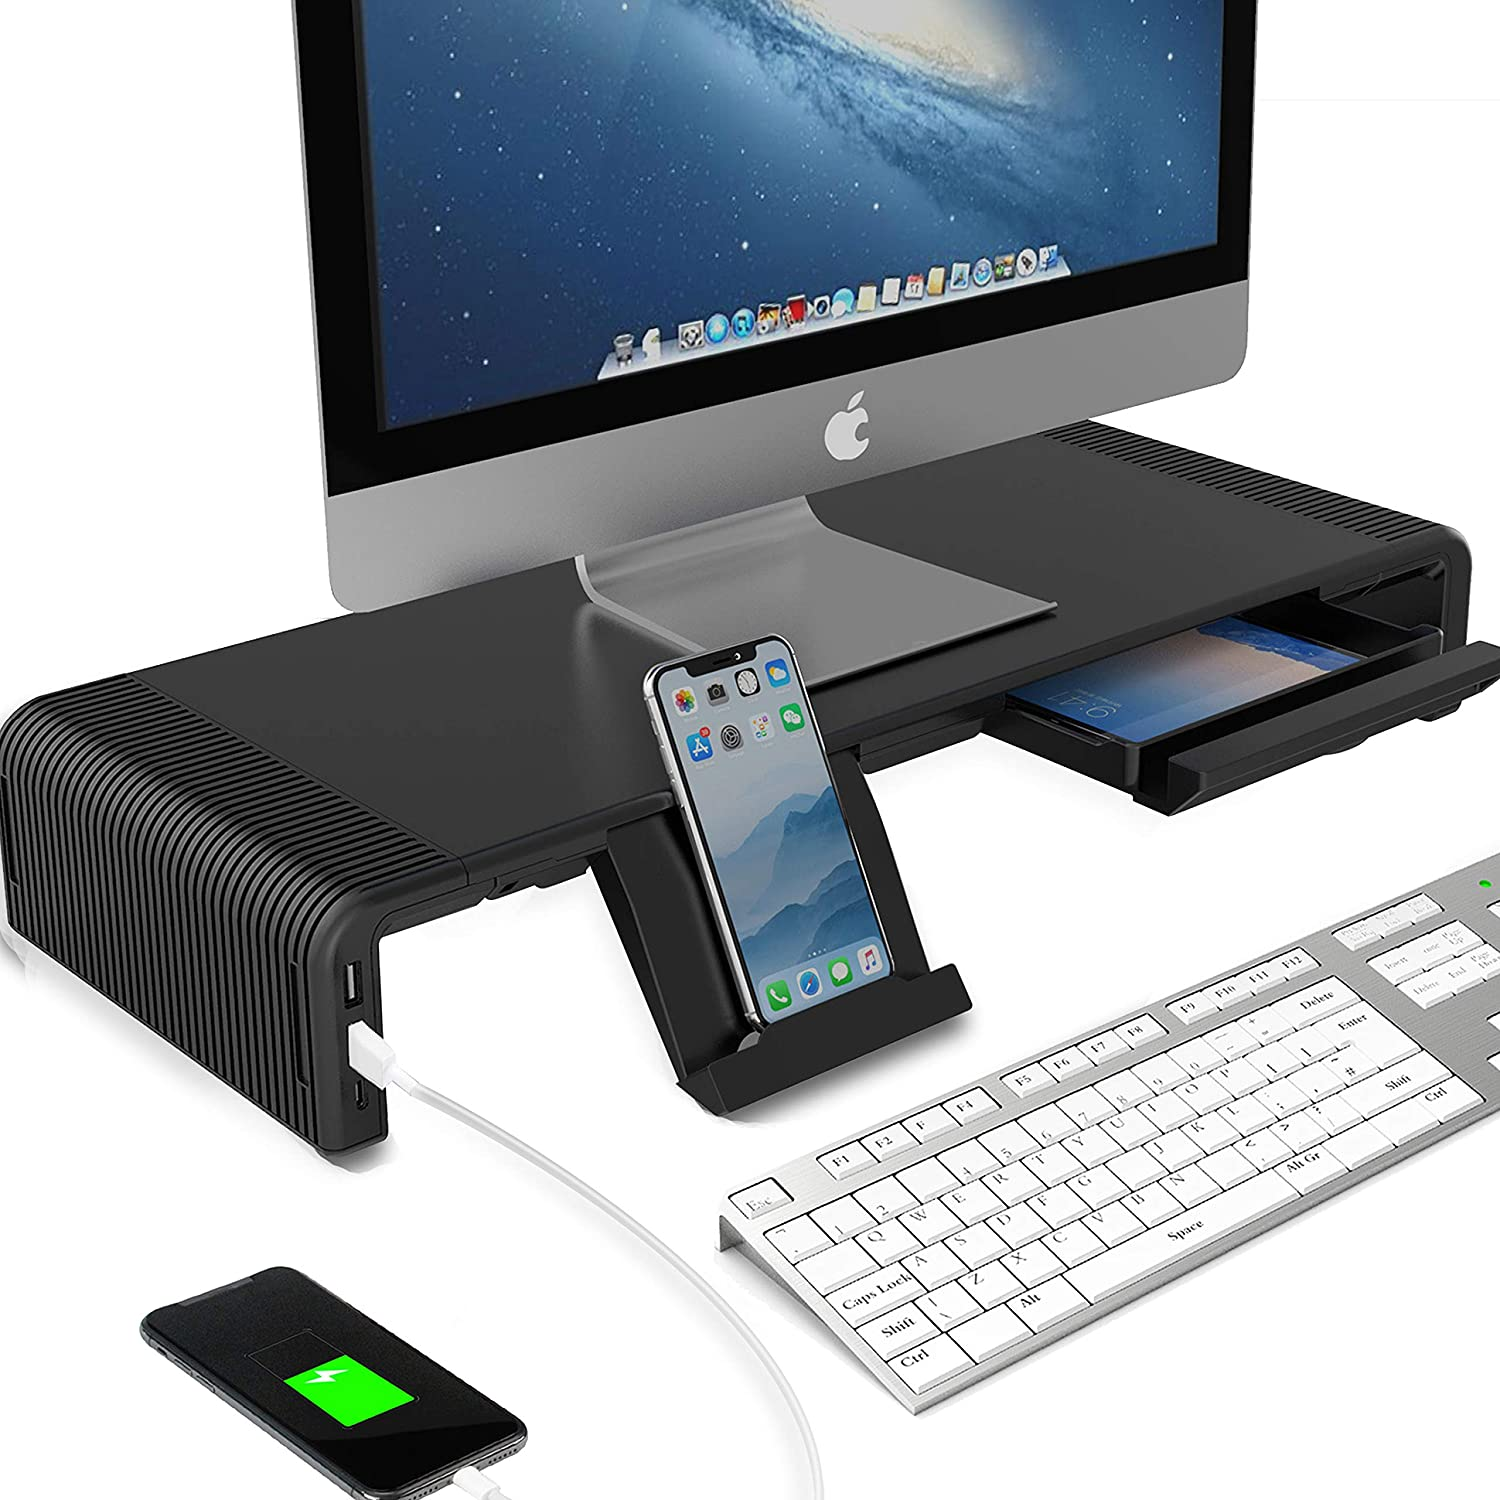 Monitor Riser Stand and Desk Storage Organizer, 2 USB 3.0 & Type-C Ports Computer Stand Support Transfer Data, Charging with Storage Drawer, Phone Holder for Different Size Laptop/Computer/MacBook/PC